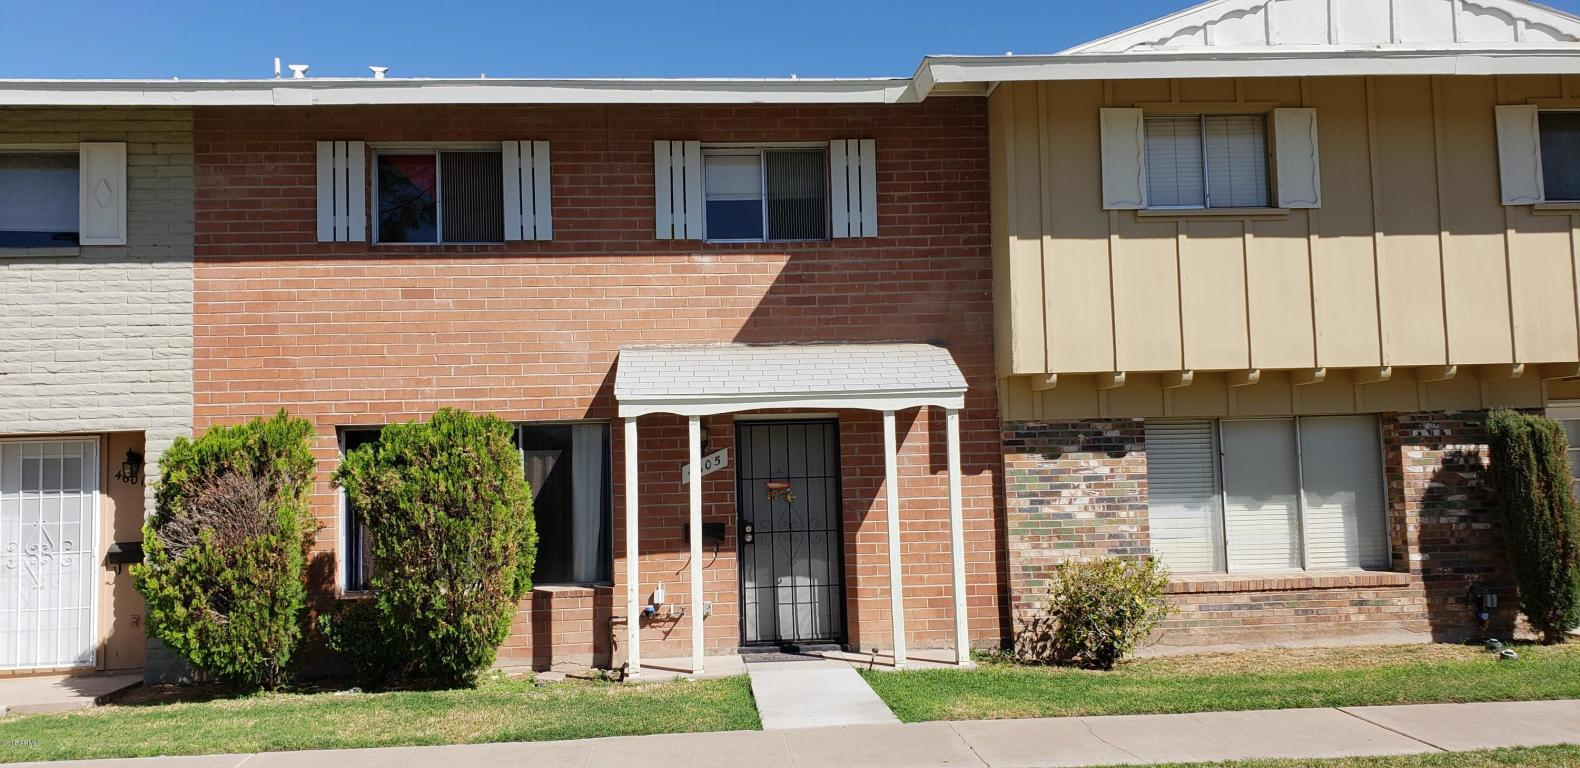 4 bed / 1 full, 1 partial baths Condo/Townhouse in Tempe for $225,000